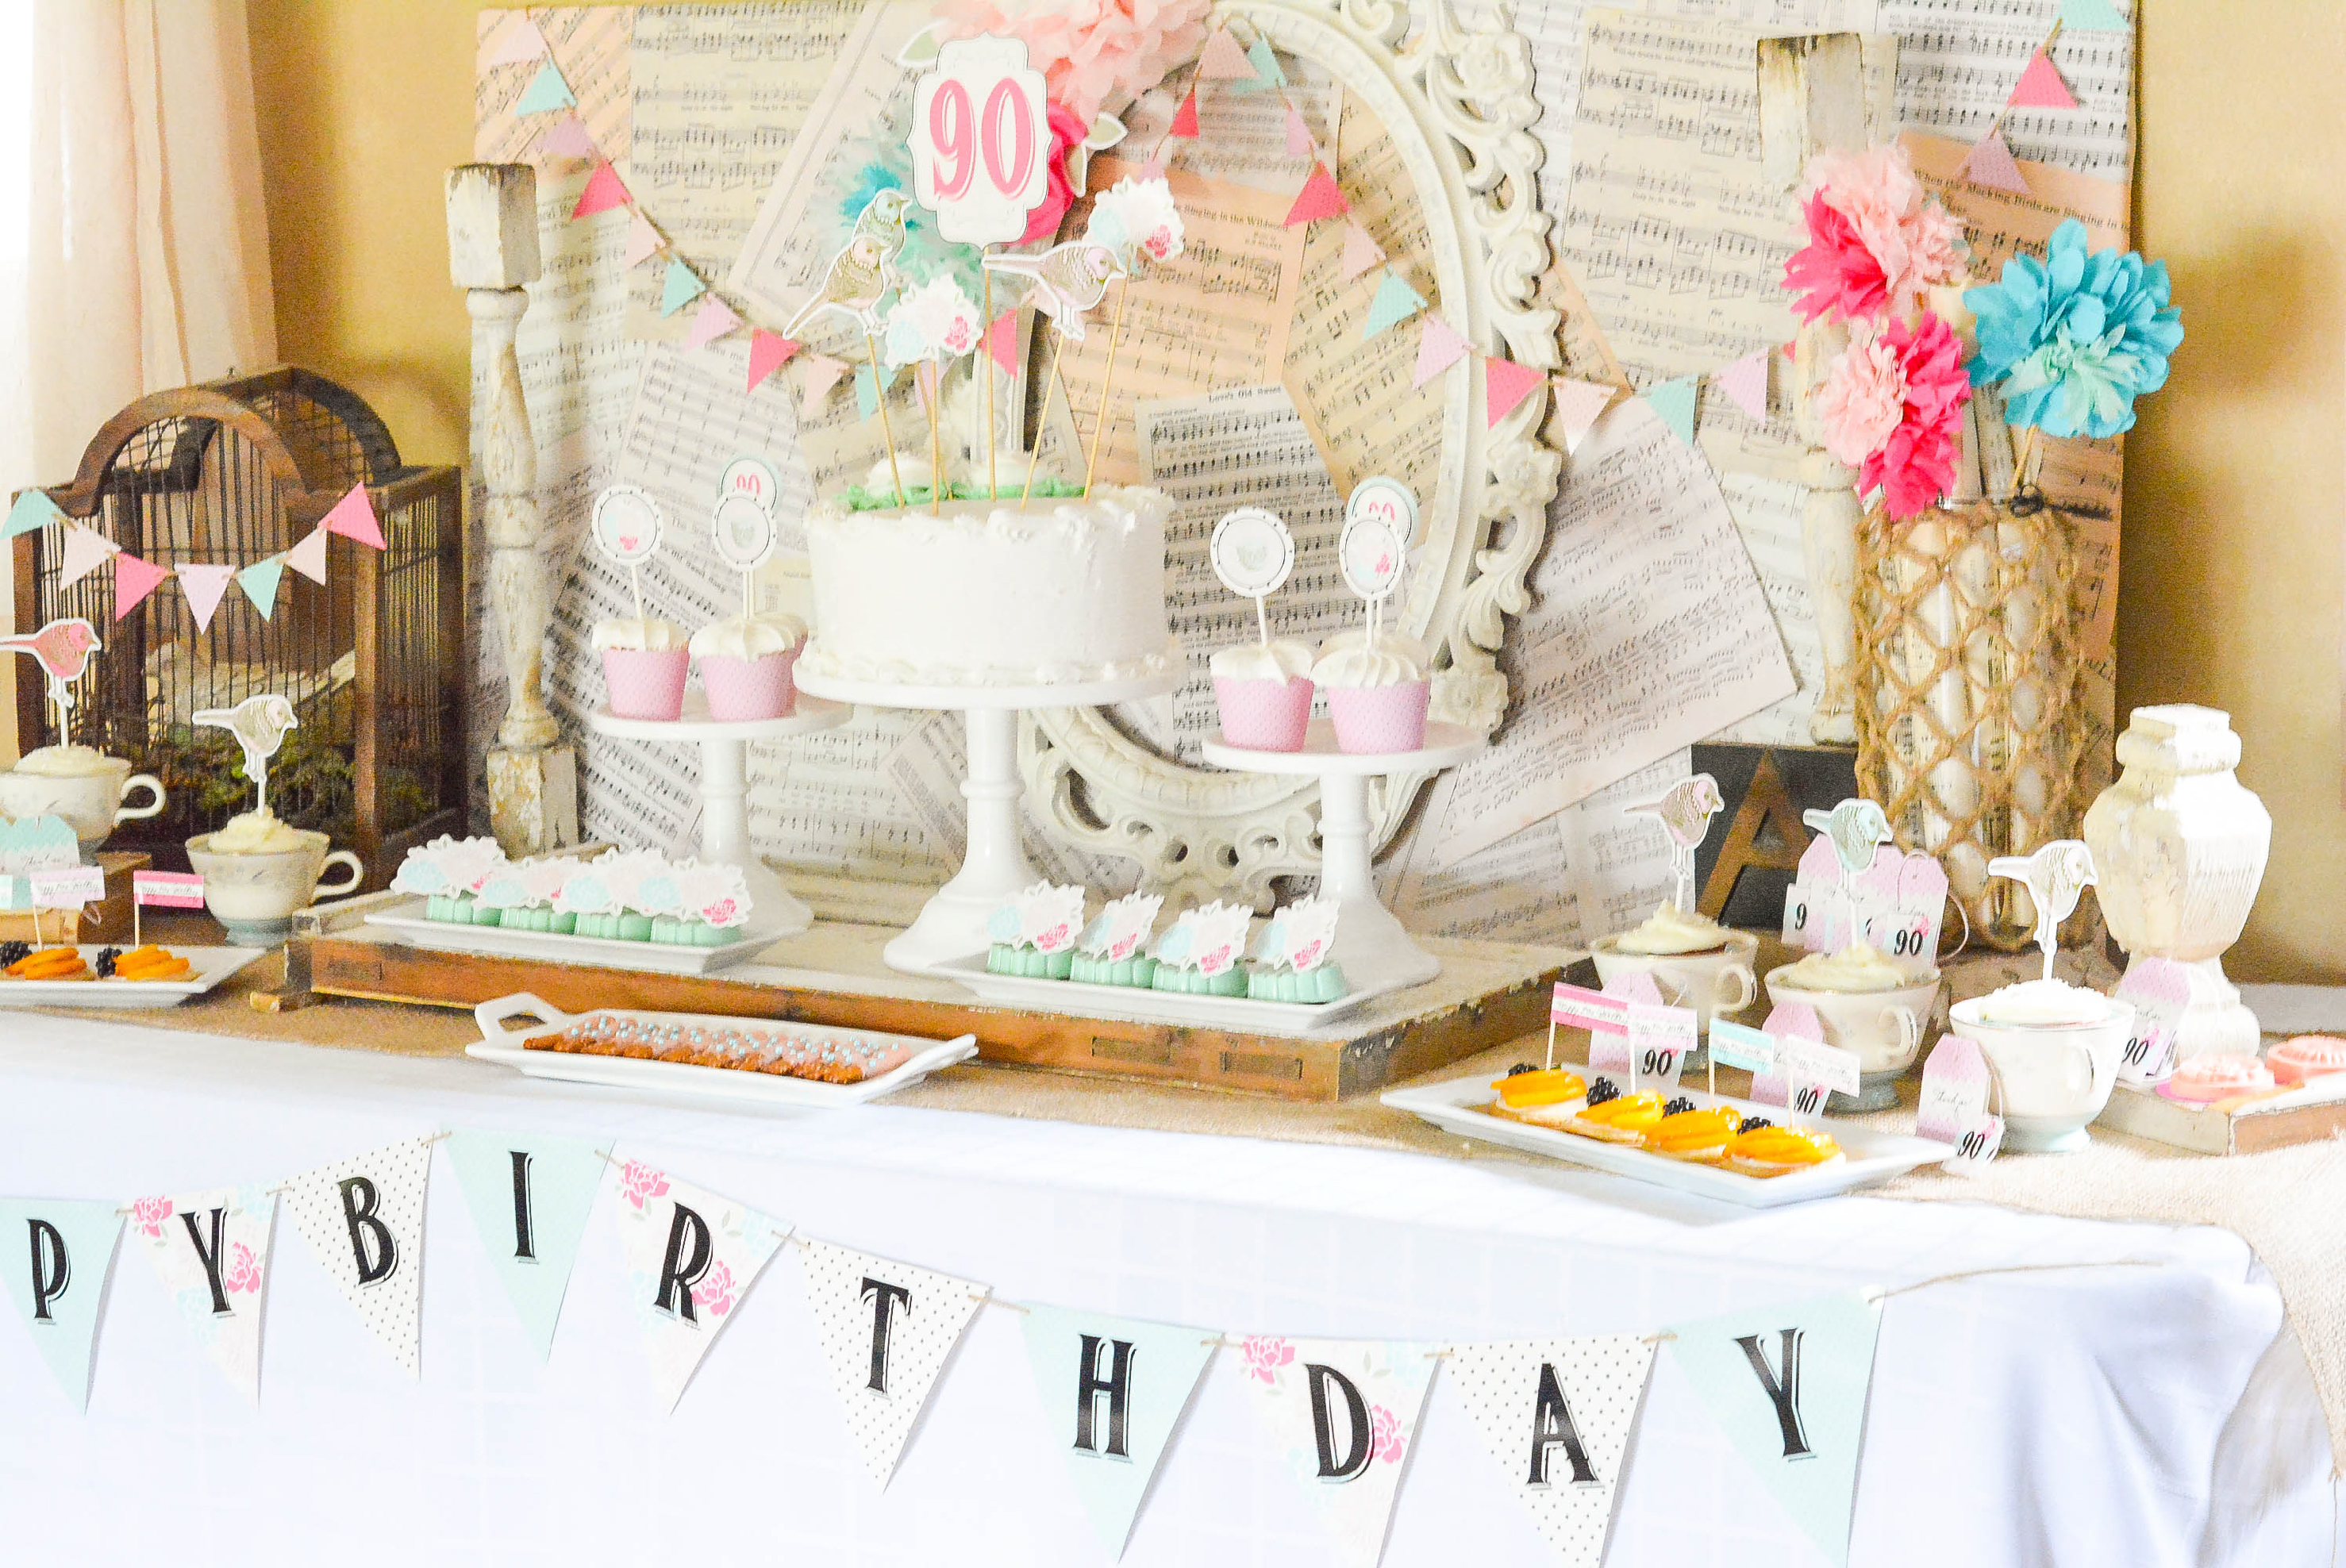 A Shabby Chic Vintage Rose 90th Birthday Celebration